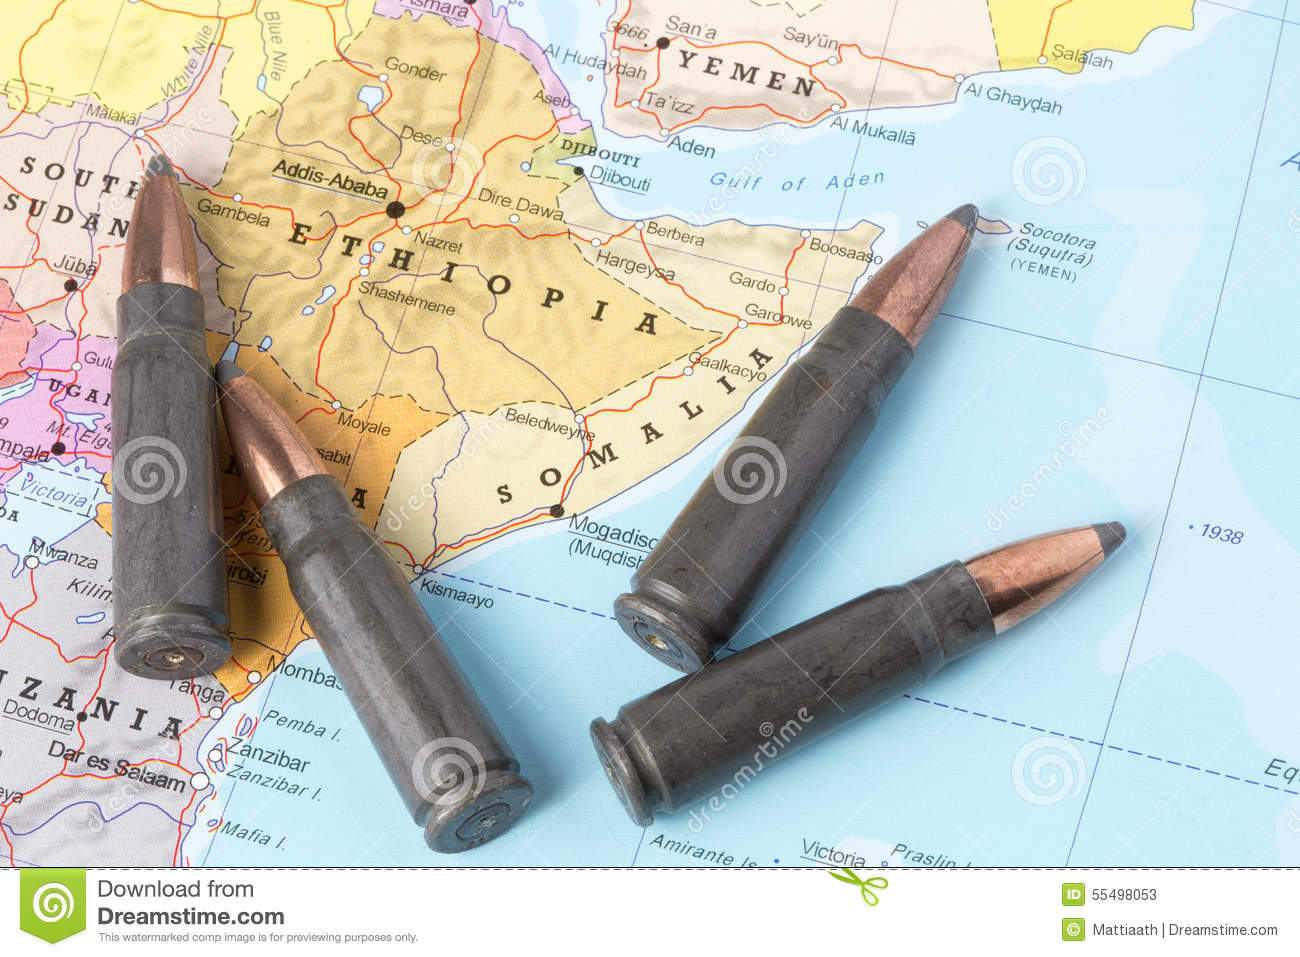 Bullets on the map of Ethiopia and Somalia